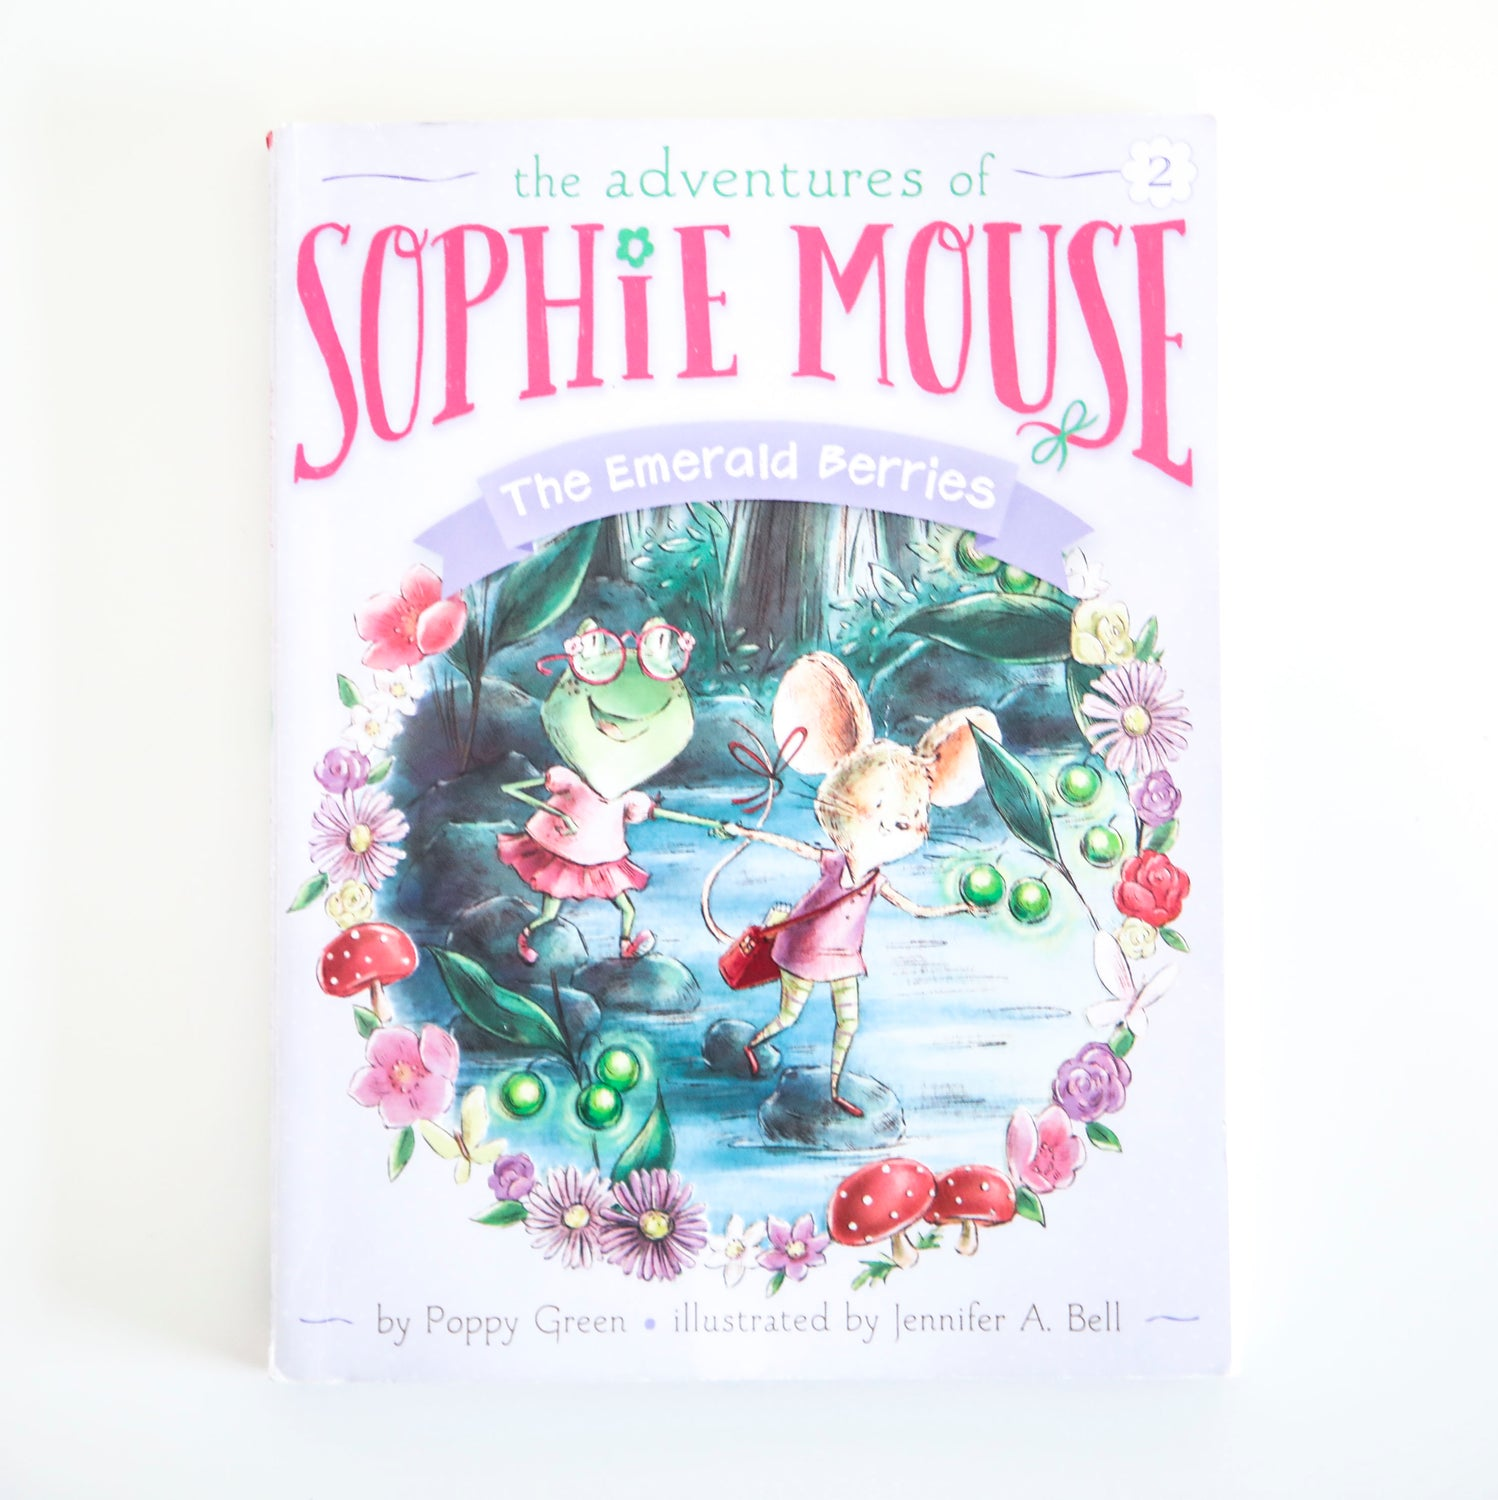 THE ADVENTURES OF SOPHIE MOUSE: THE EMERALD BERRIES